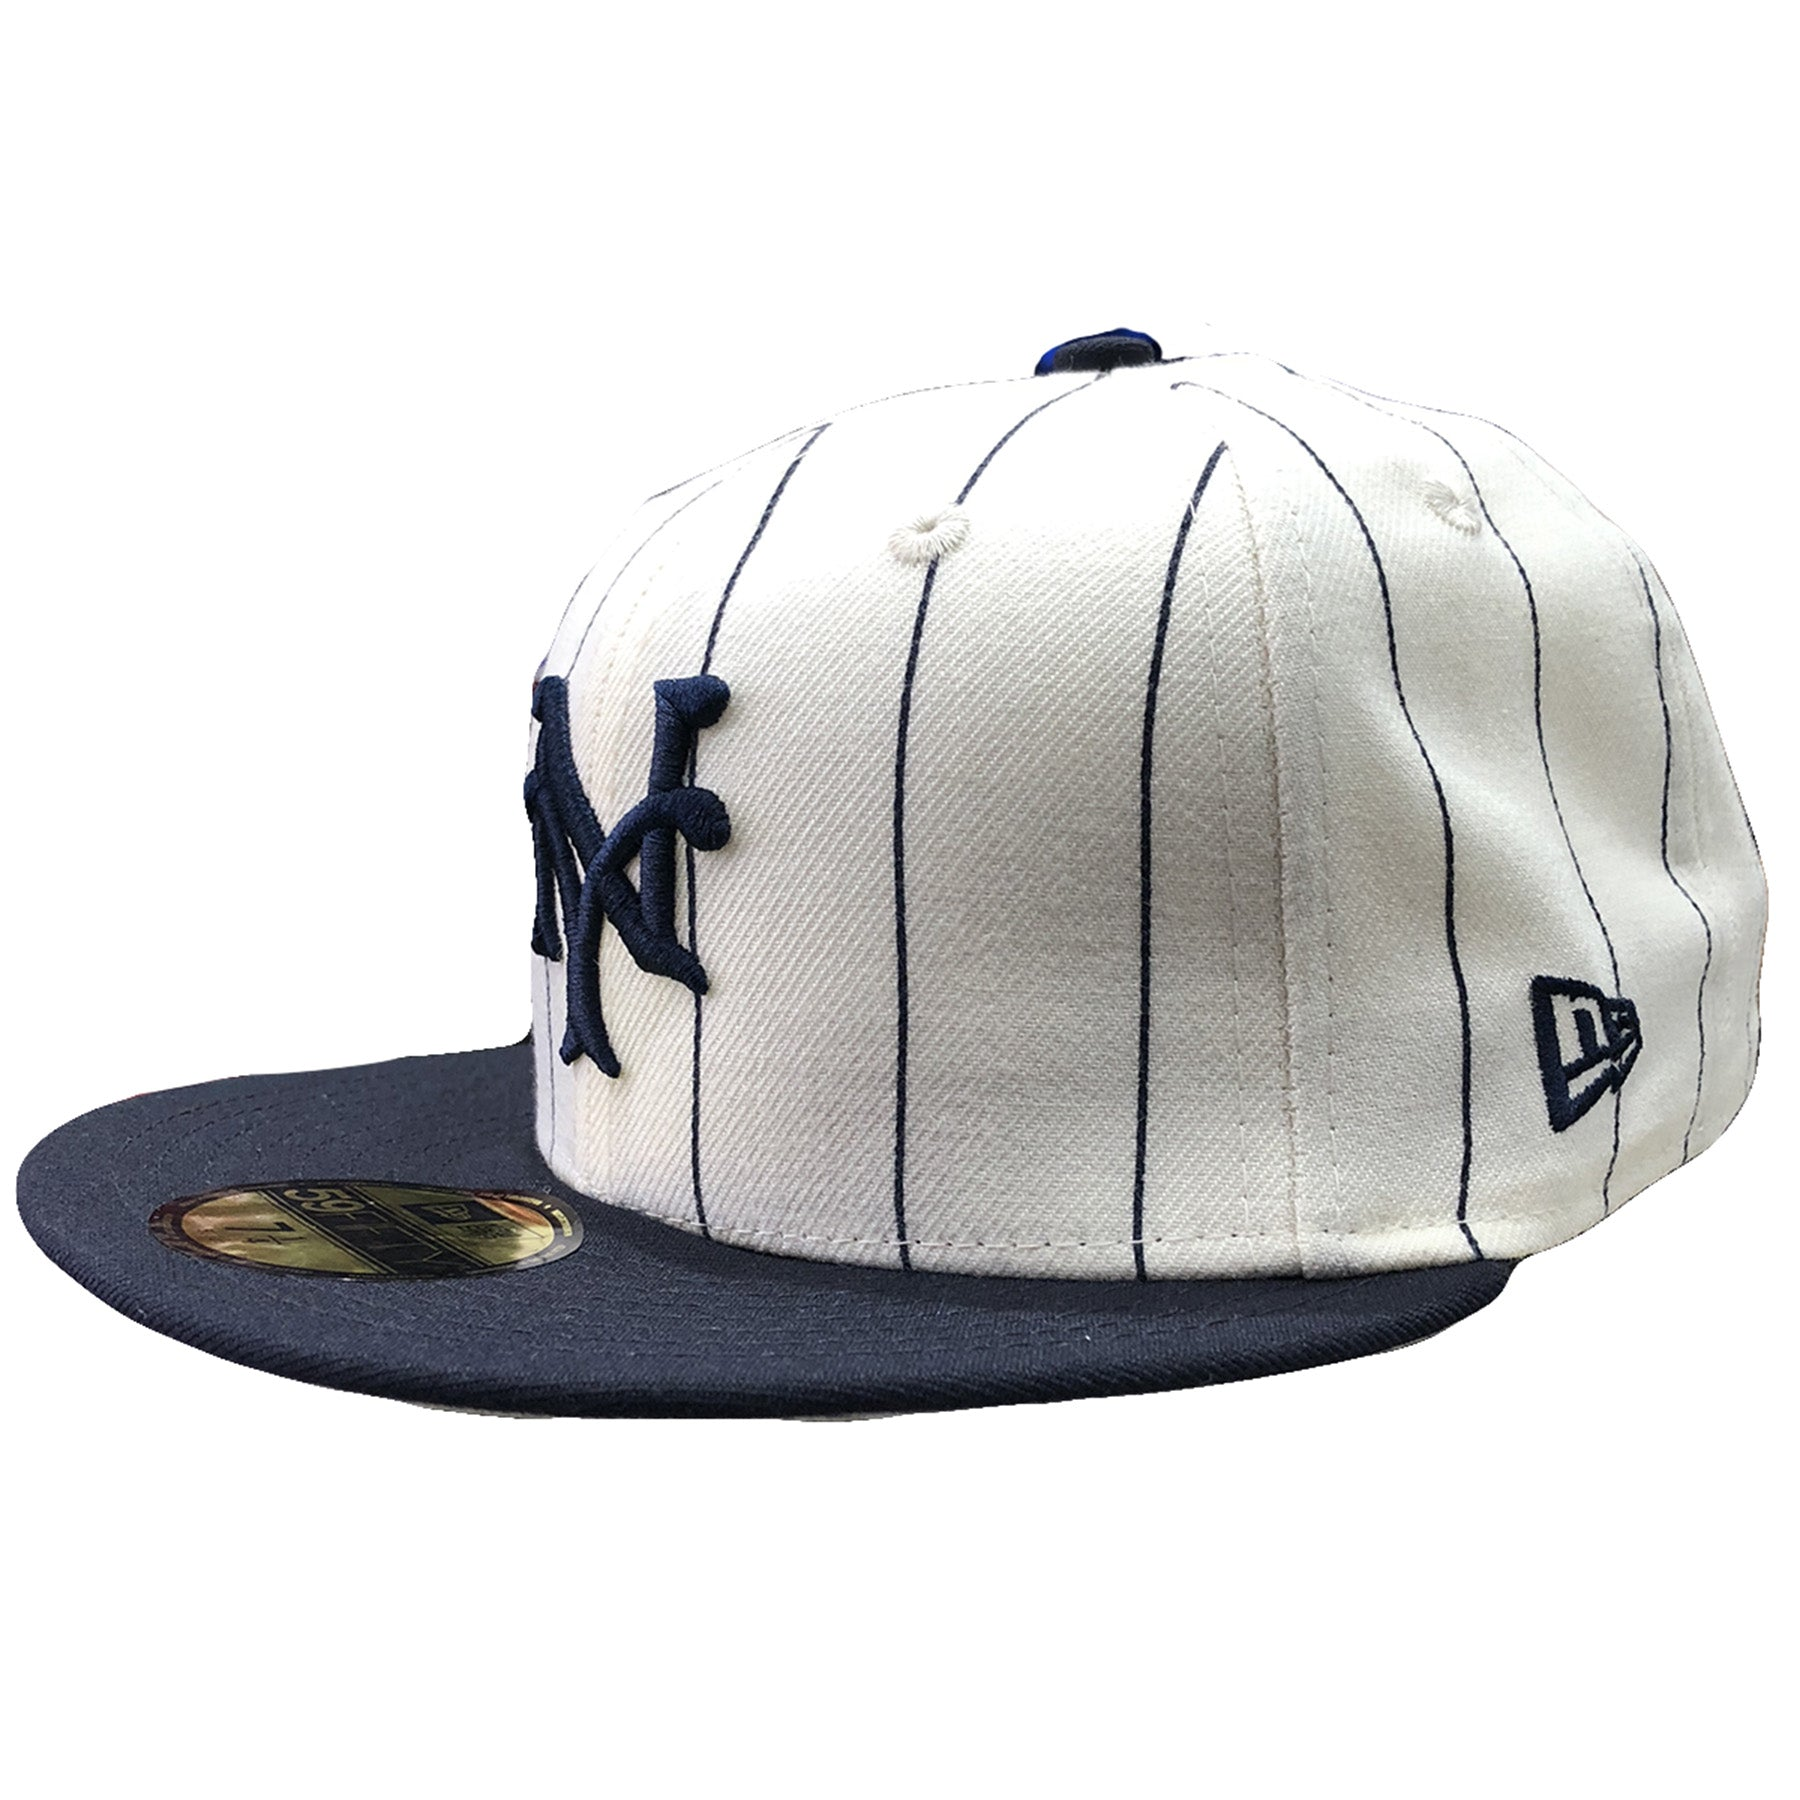 4f06eb7ba85 ... the left side of the New York Giants 1922 Retro World Seris fitted cap  has the ...